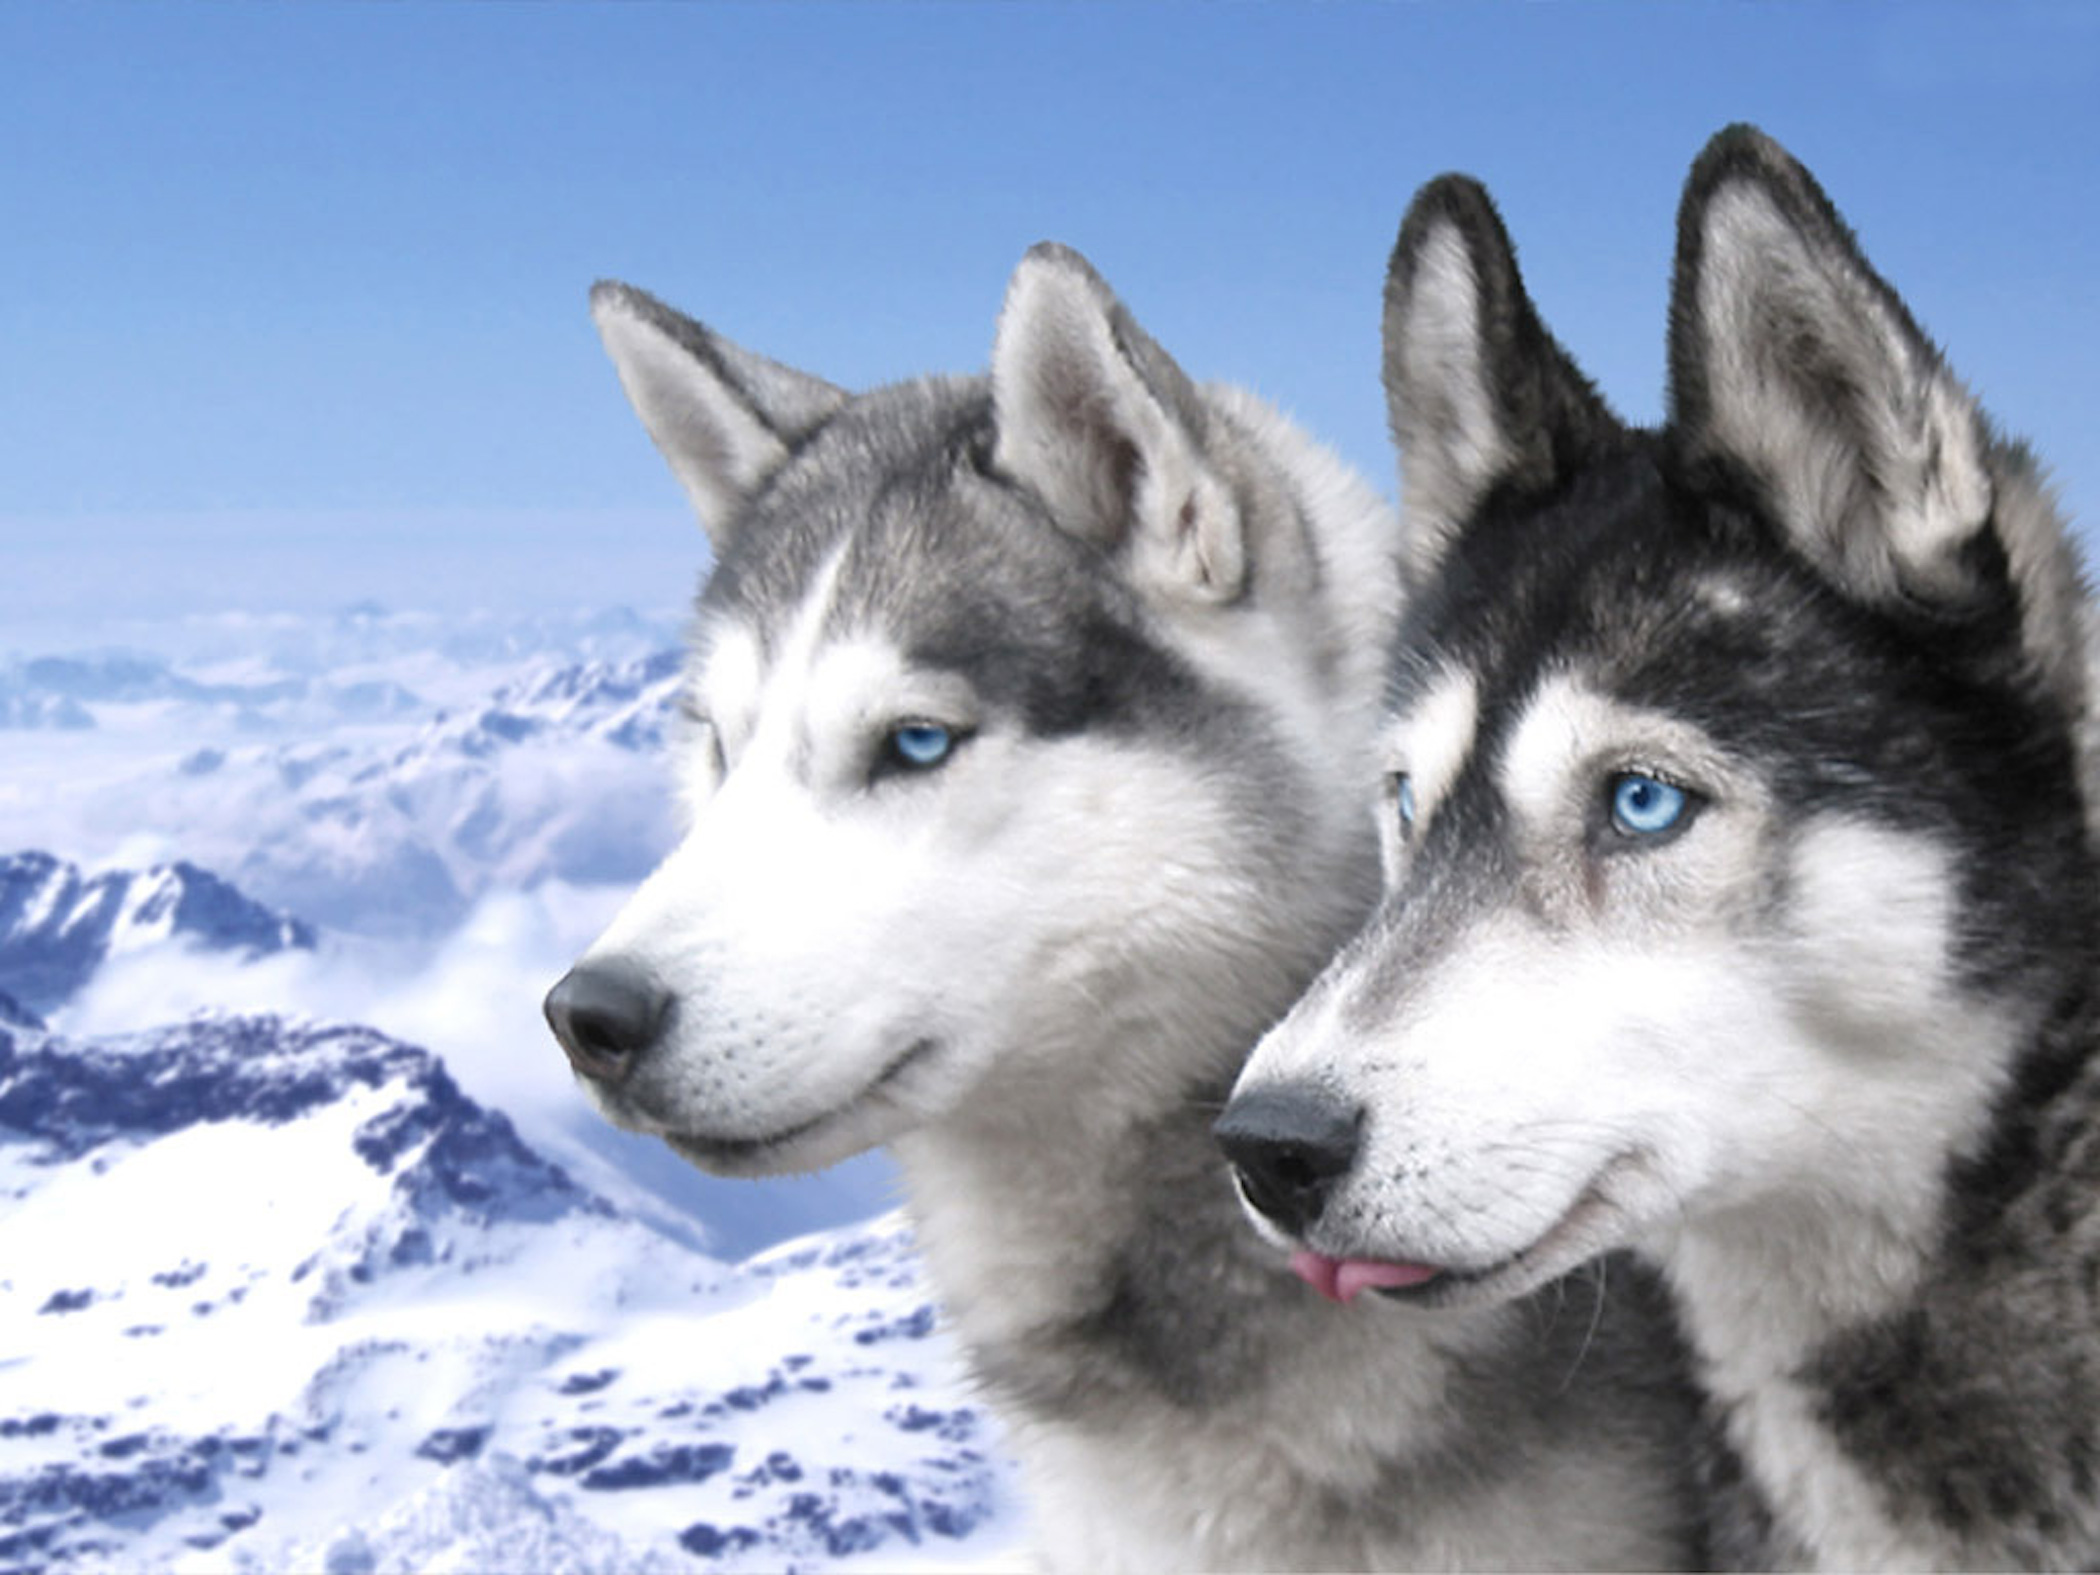 siberian husky puppies wallpaper free hd downloads. Black Bedroom Furniture Sets. Home Design Ideas